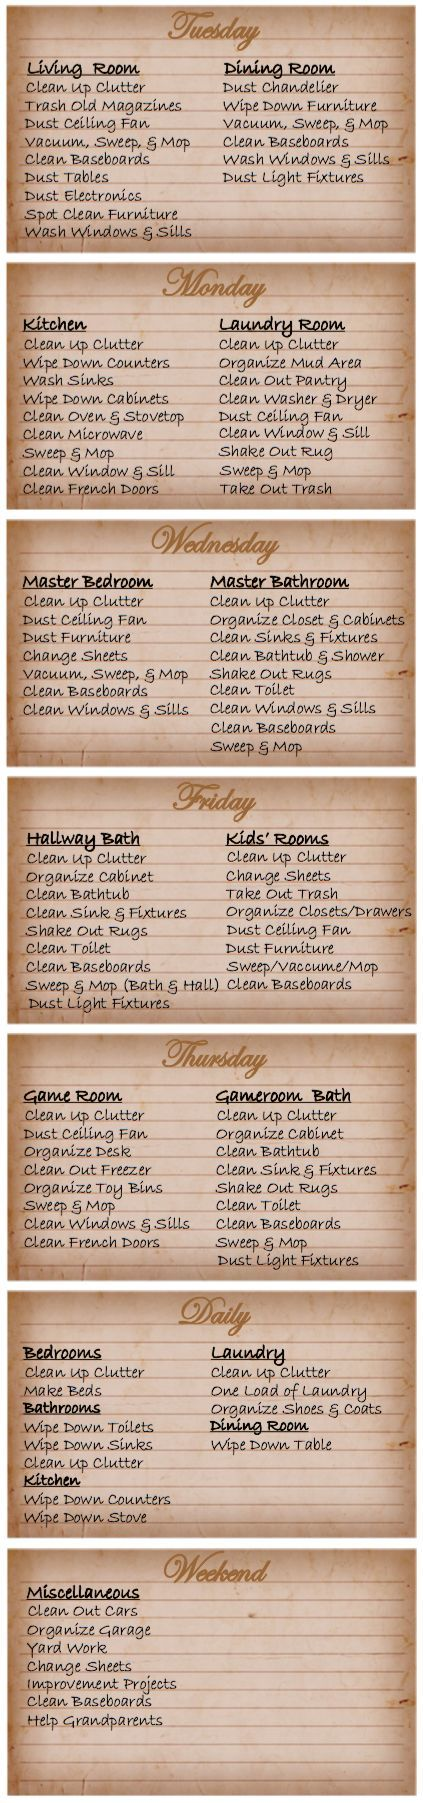 Printable House Cleaning Schedule House cleaning schedules - housework schedule